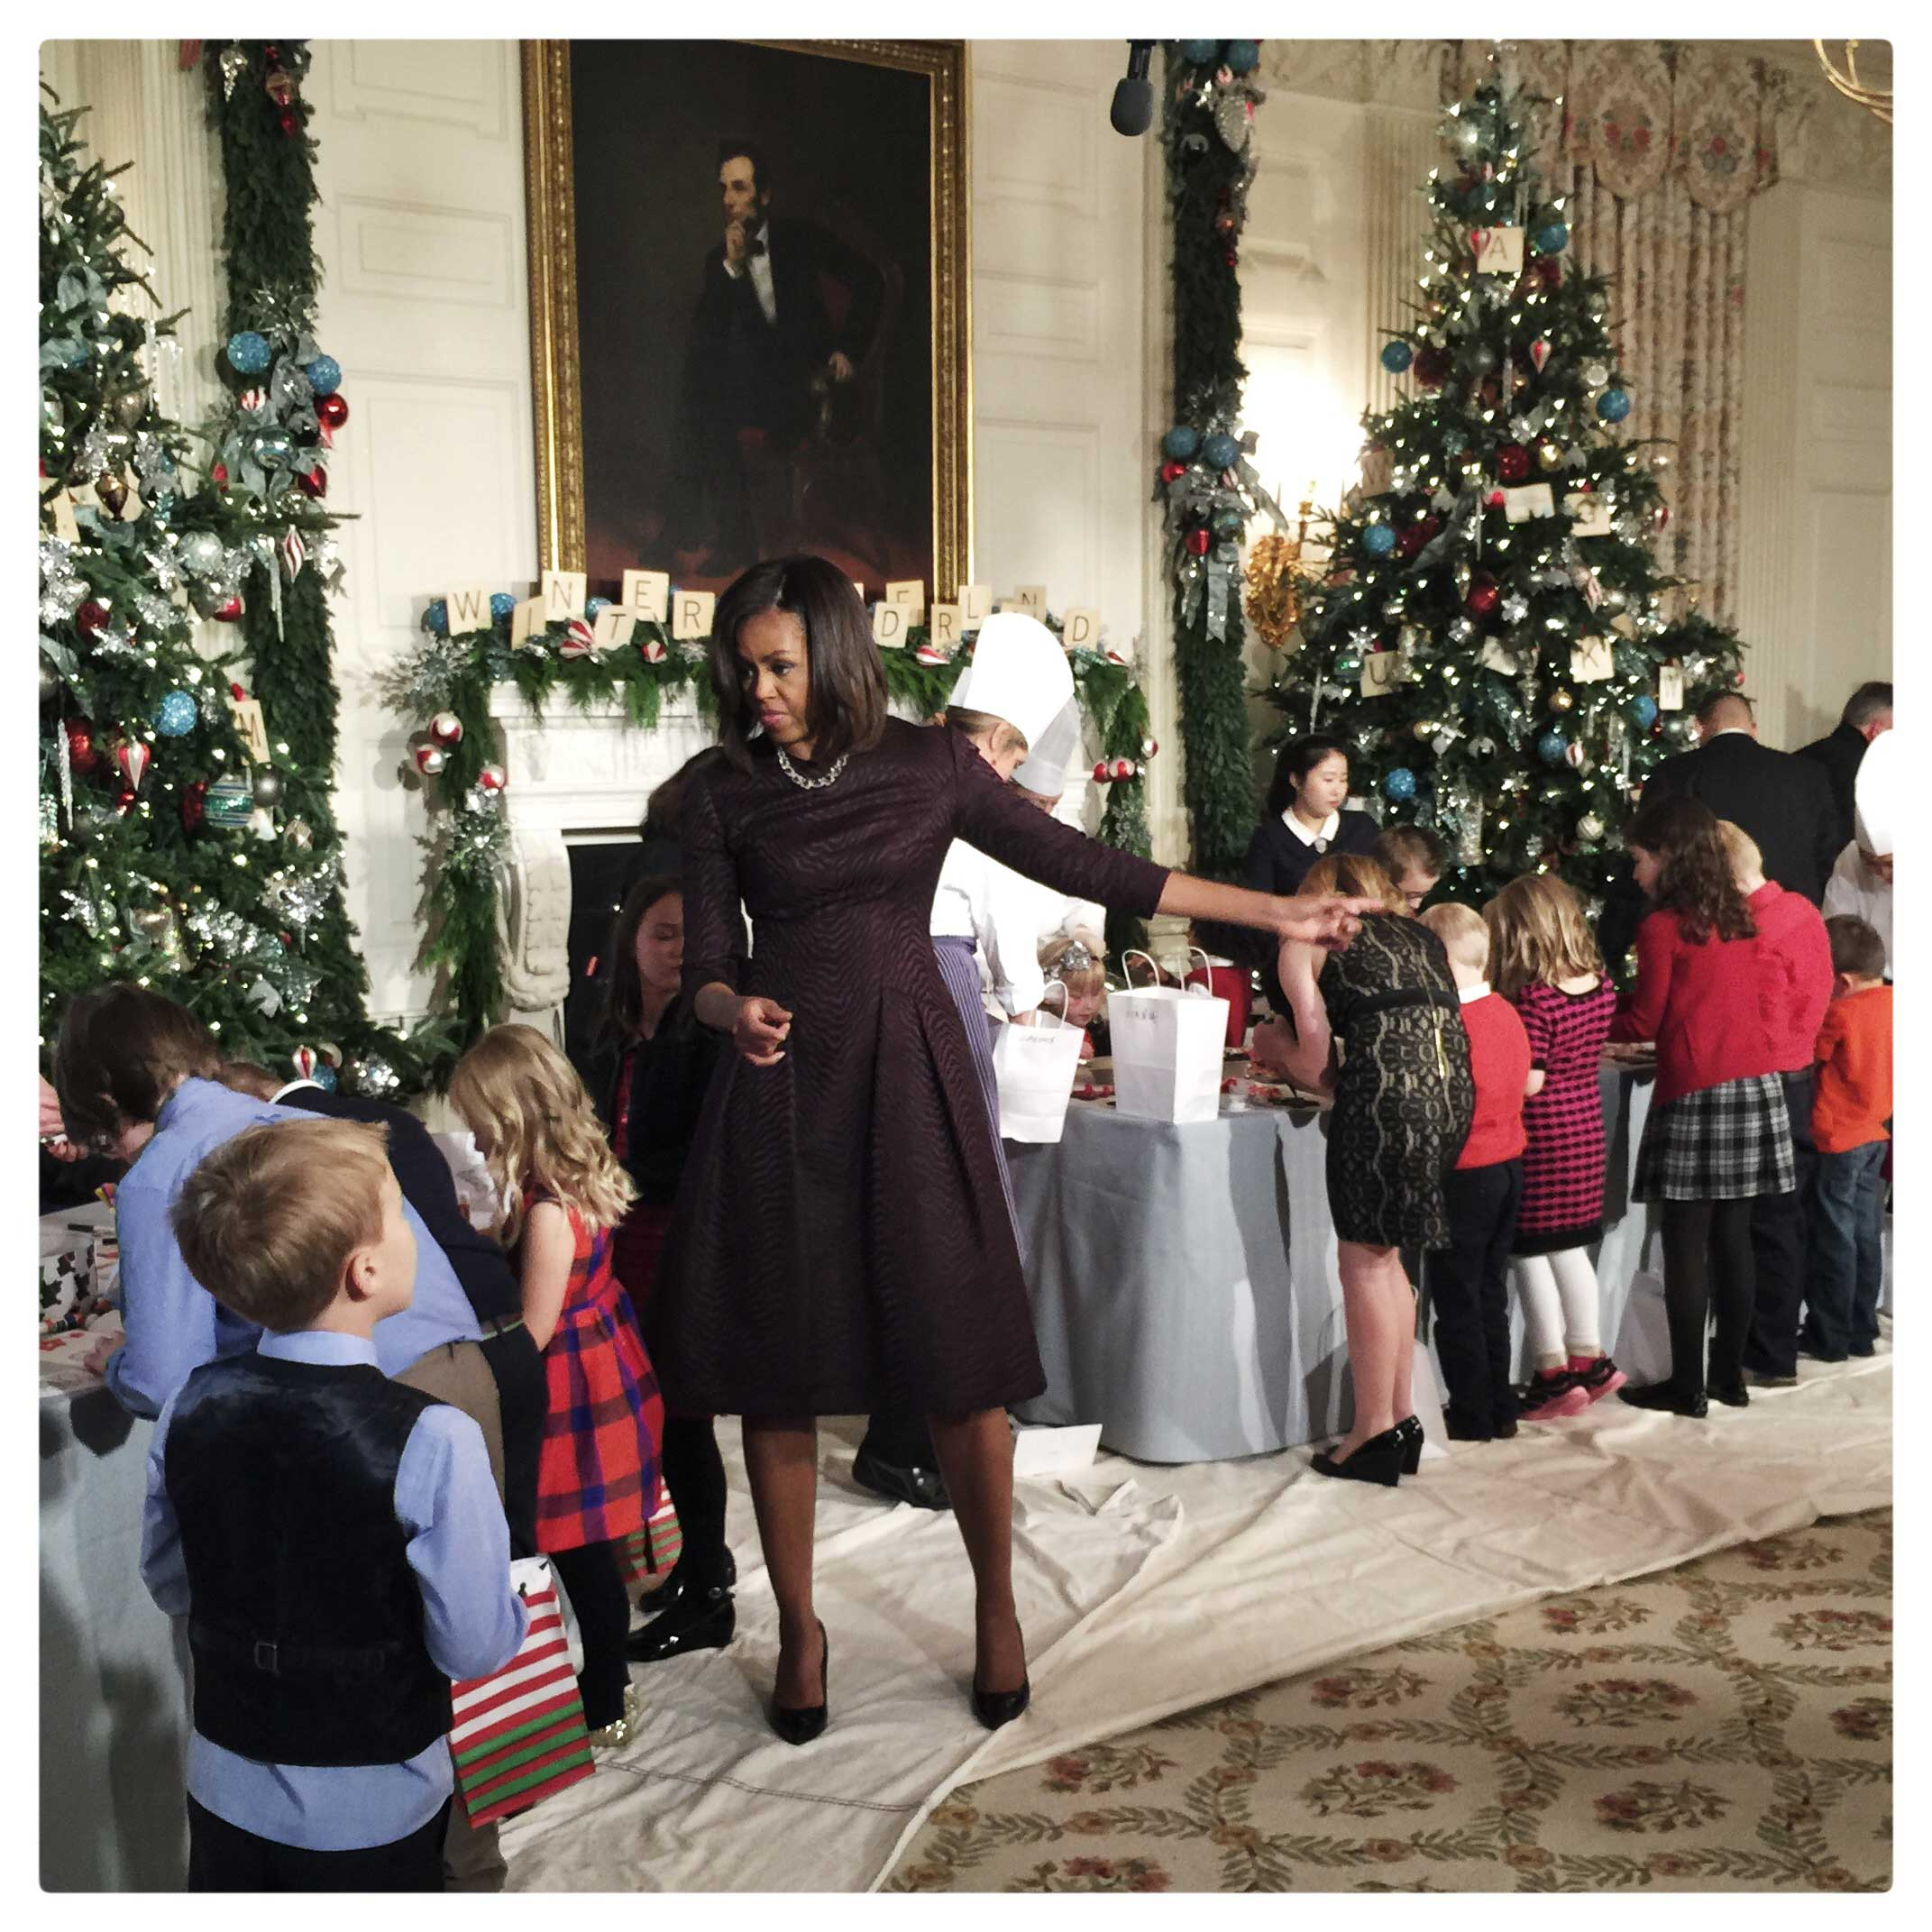 U.S. first lady Michelle Obama decorates holiday crafts with military children at the State Dining Room of the White House. The first lady hosted military families to preview the holiday decorations,  which are themed                                'A Children's Winter Wonderland' this year.